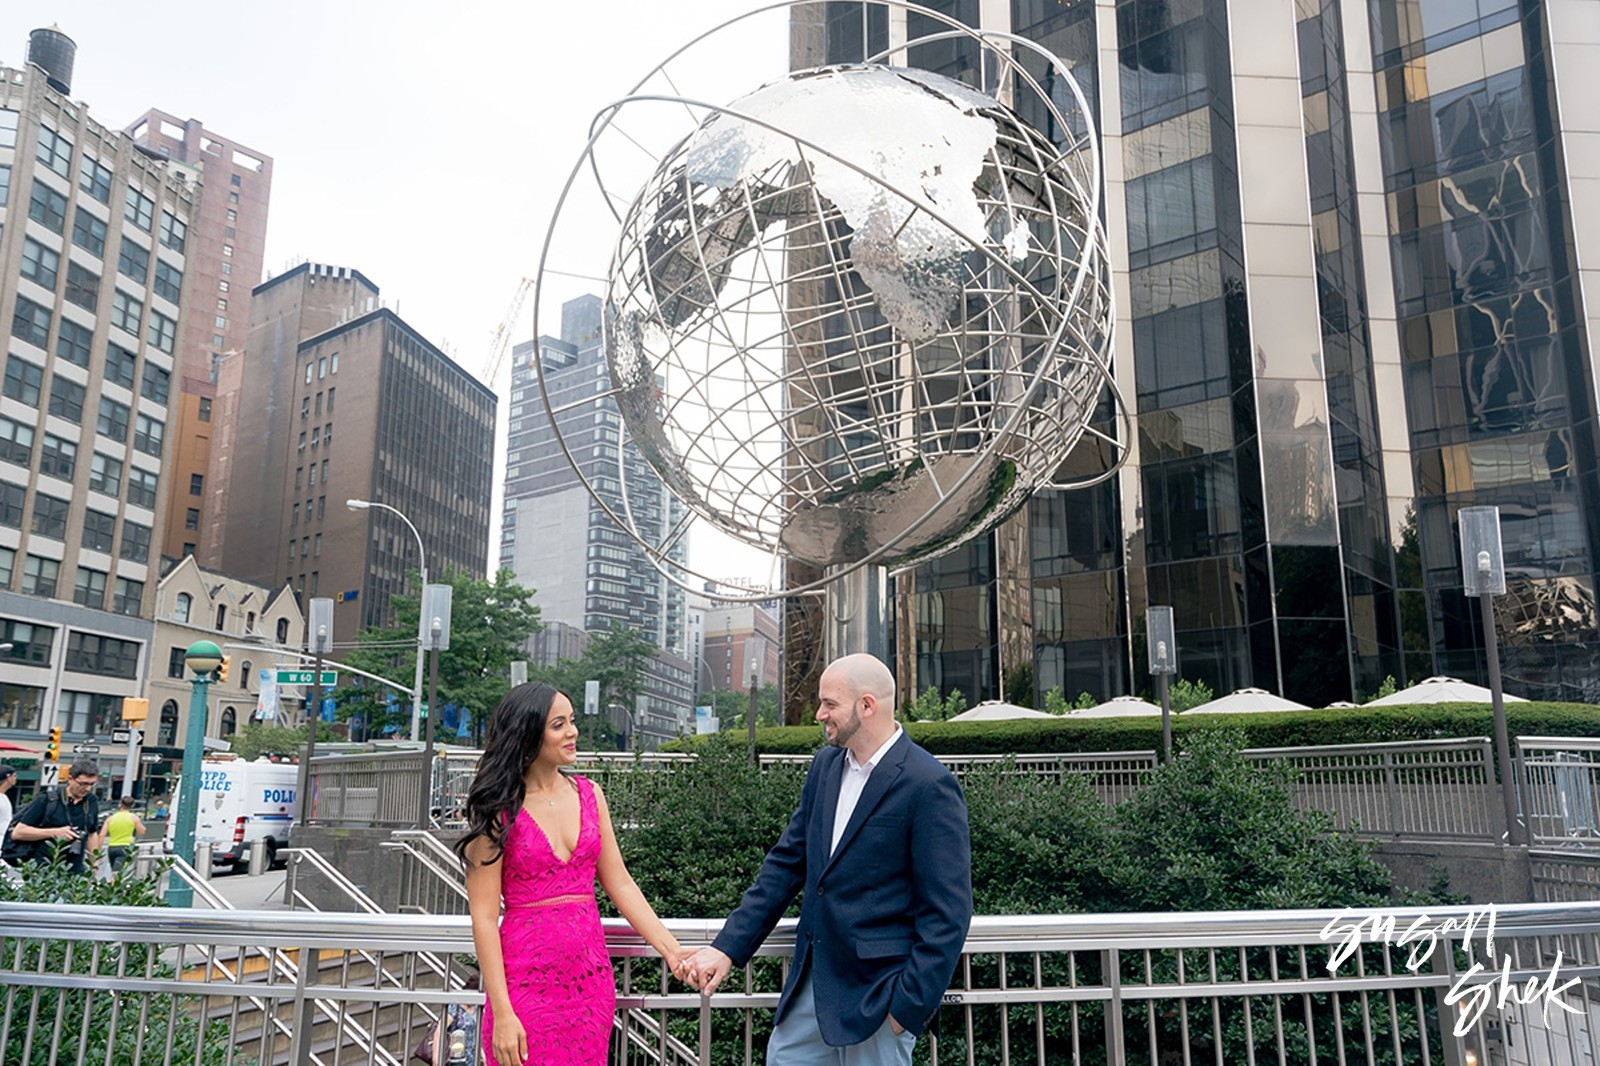 Columbus Circle, Engagement Shoot, NYC Engagement Photographer, Engagement Session, Engagement Photography, Engagement Photographer, NYC Wedding Photographer